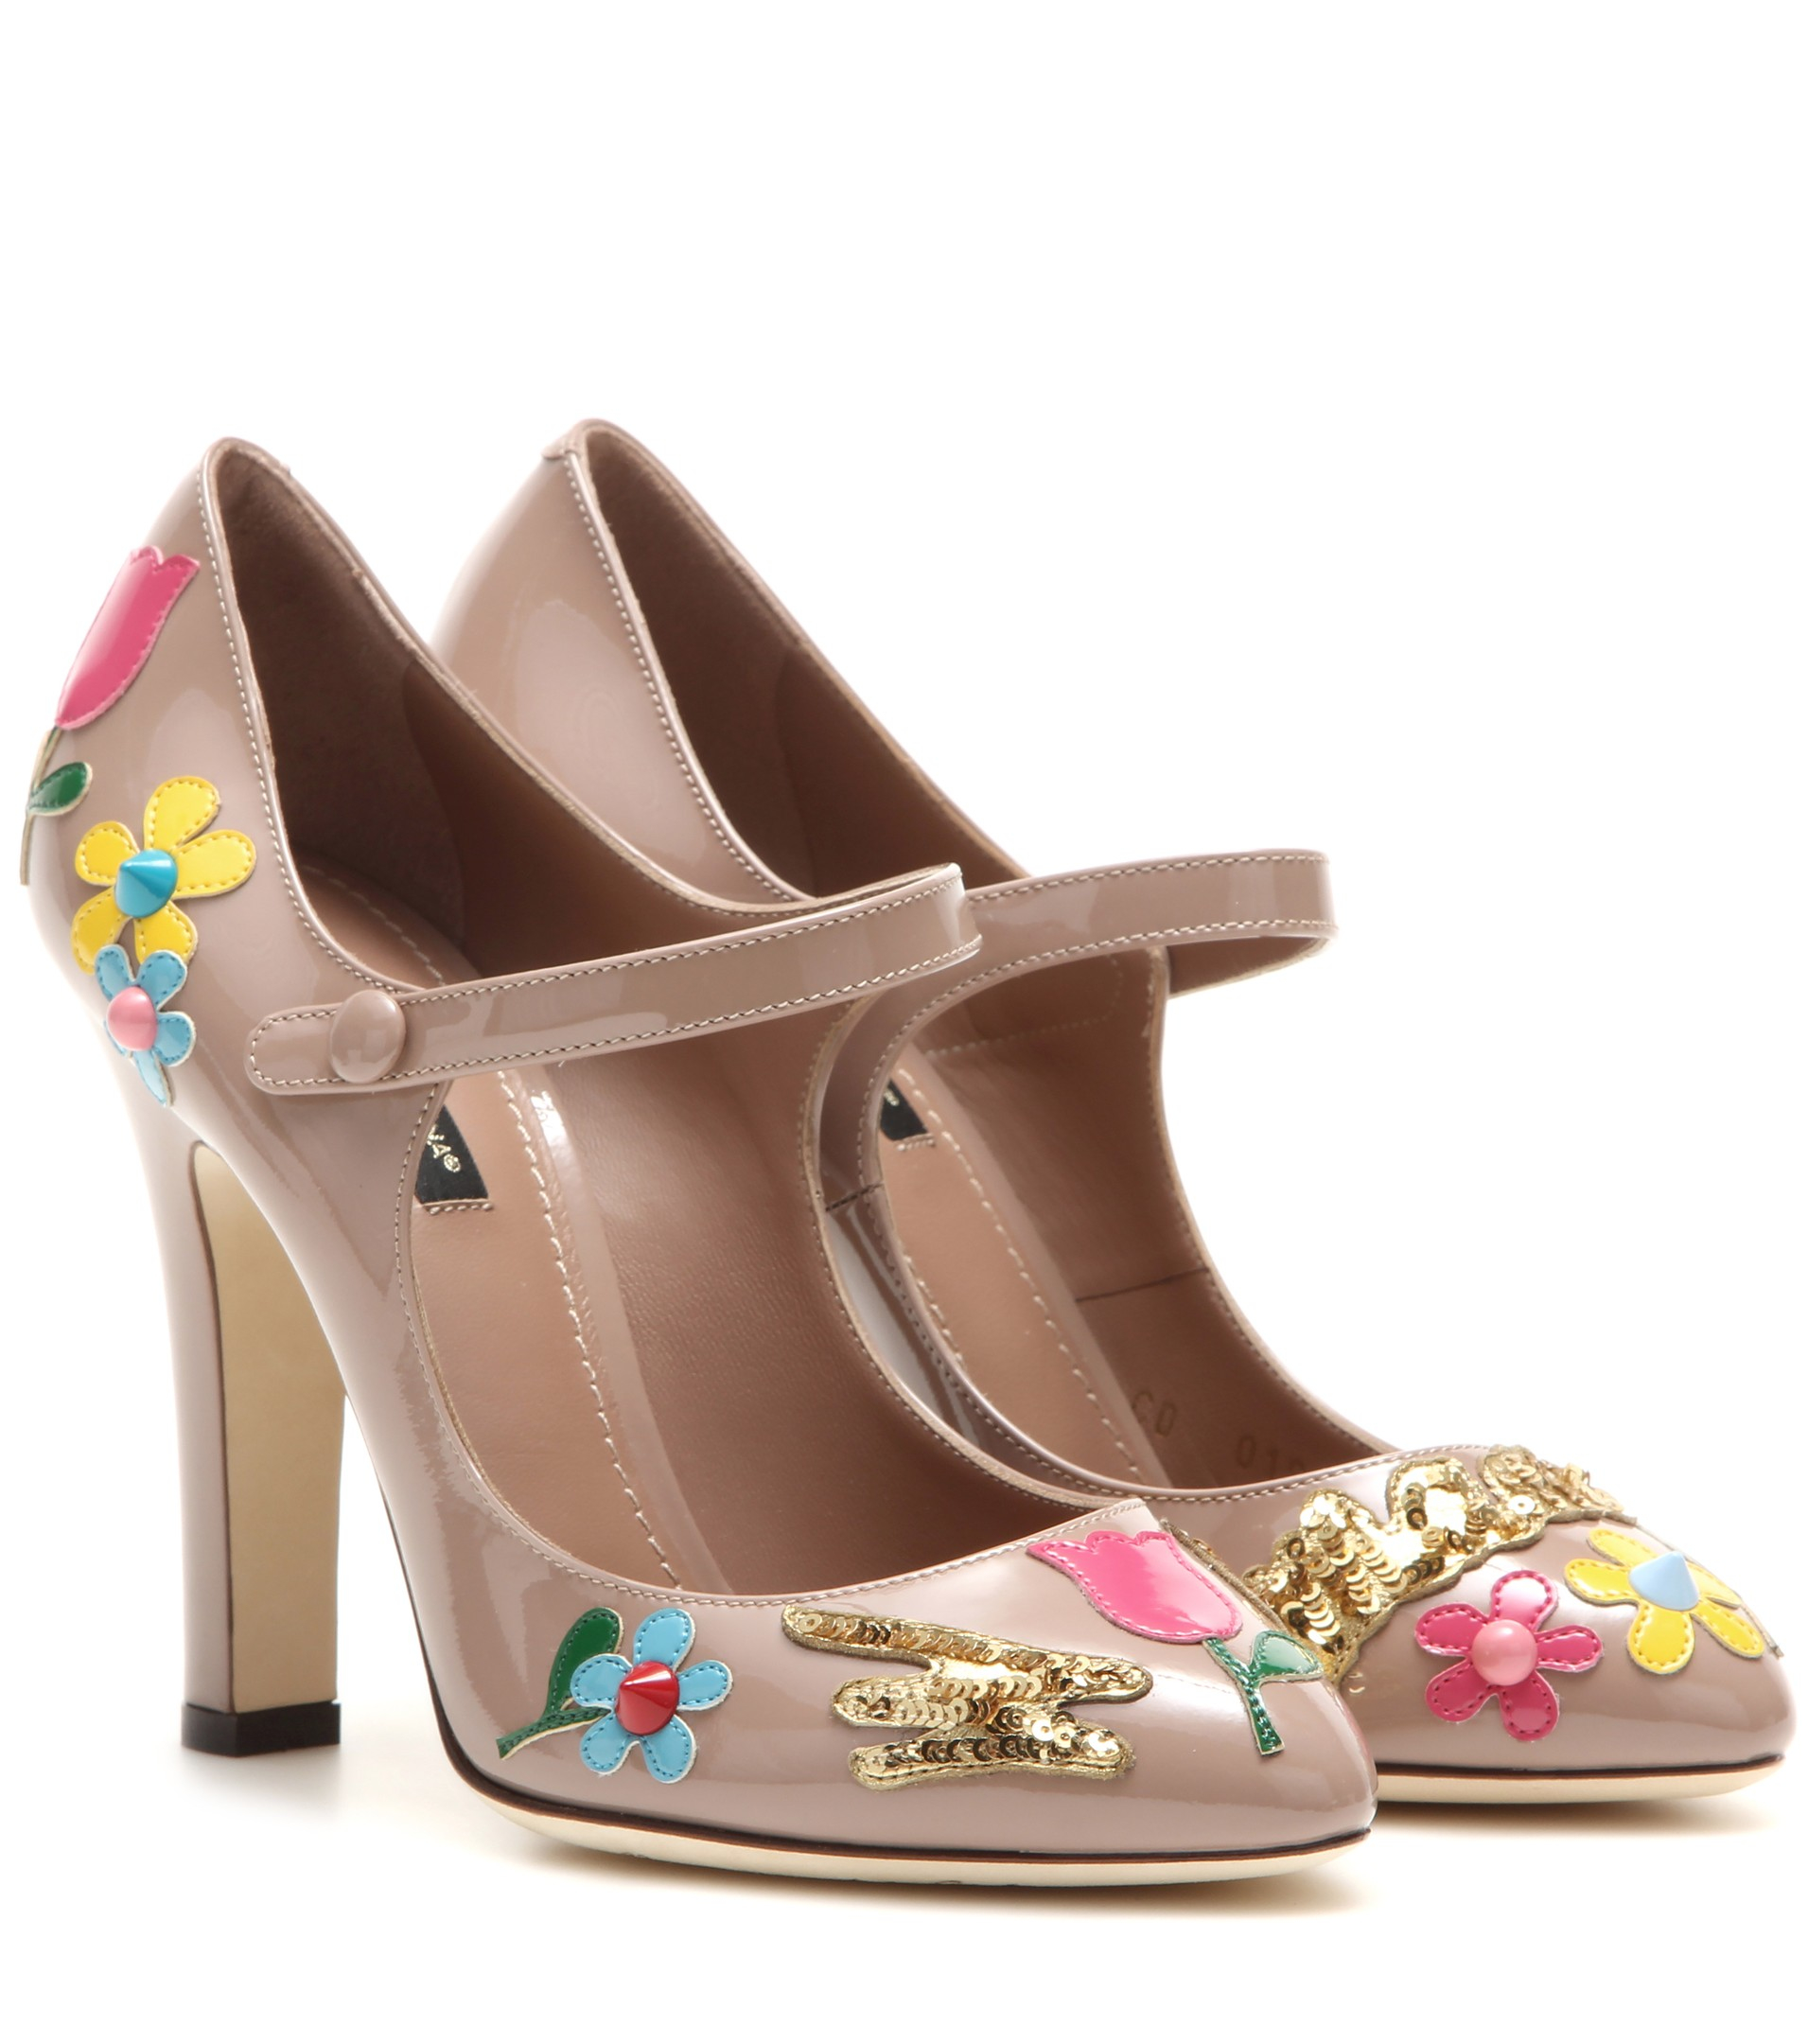 cheap best store to get Dolce & Gabbana Lori Mary Jane pumps free shipping new arrival buy cheap sneakernews discounts for sale uAilvZU6vS